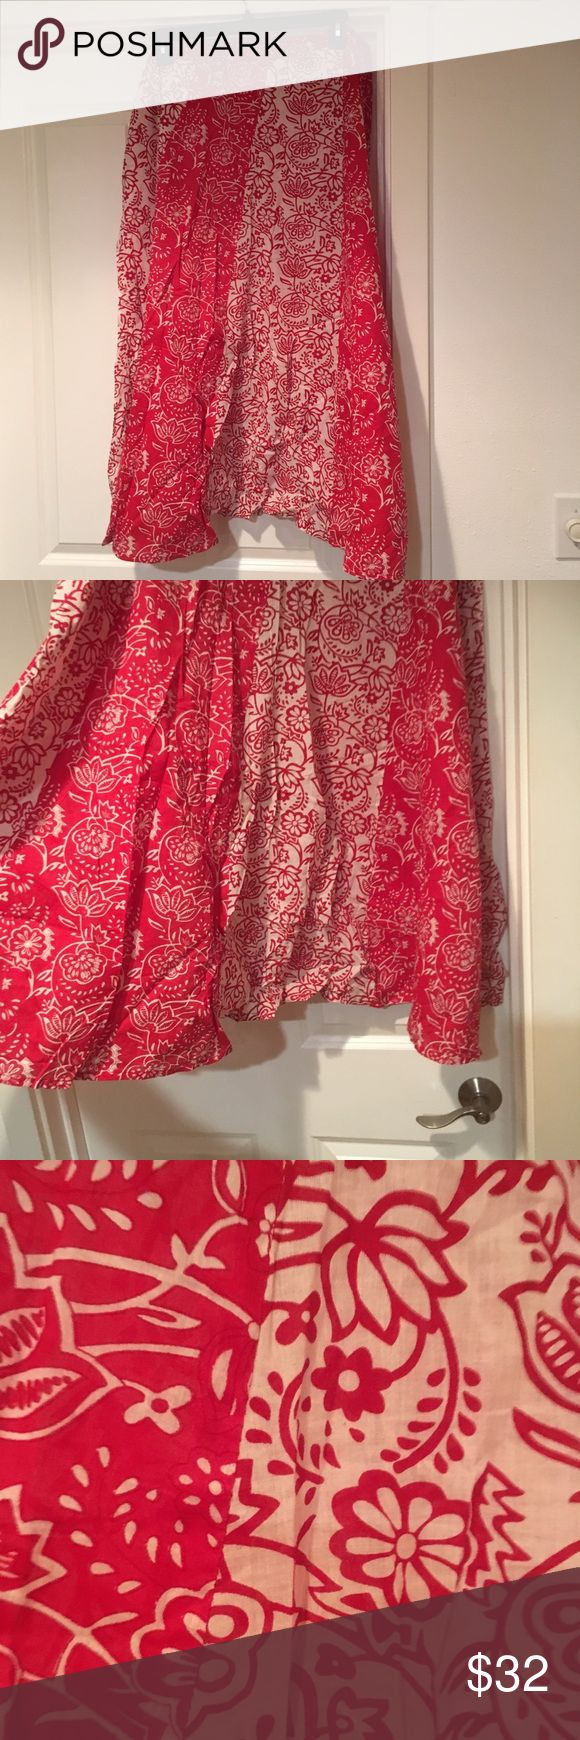 Full Floral 100% Cotton Maxi Skirt Red and white floral full cotton maxi skirt. Bias panels give great movement, each panel is pattern matched! EUC Casual Living Skirts Maxi